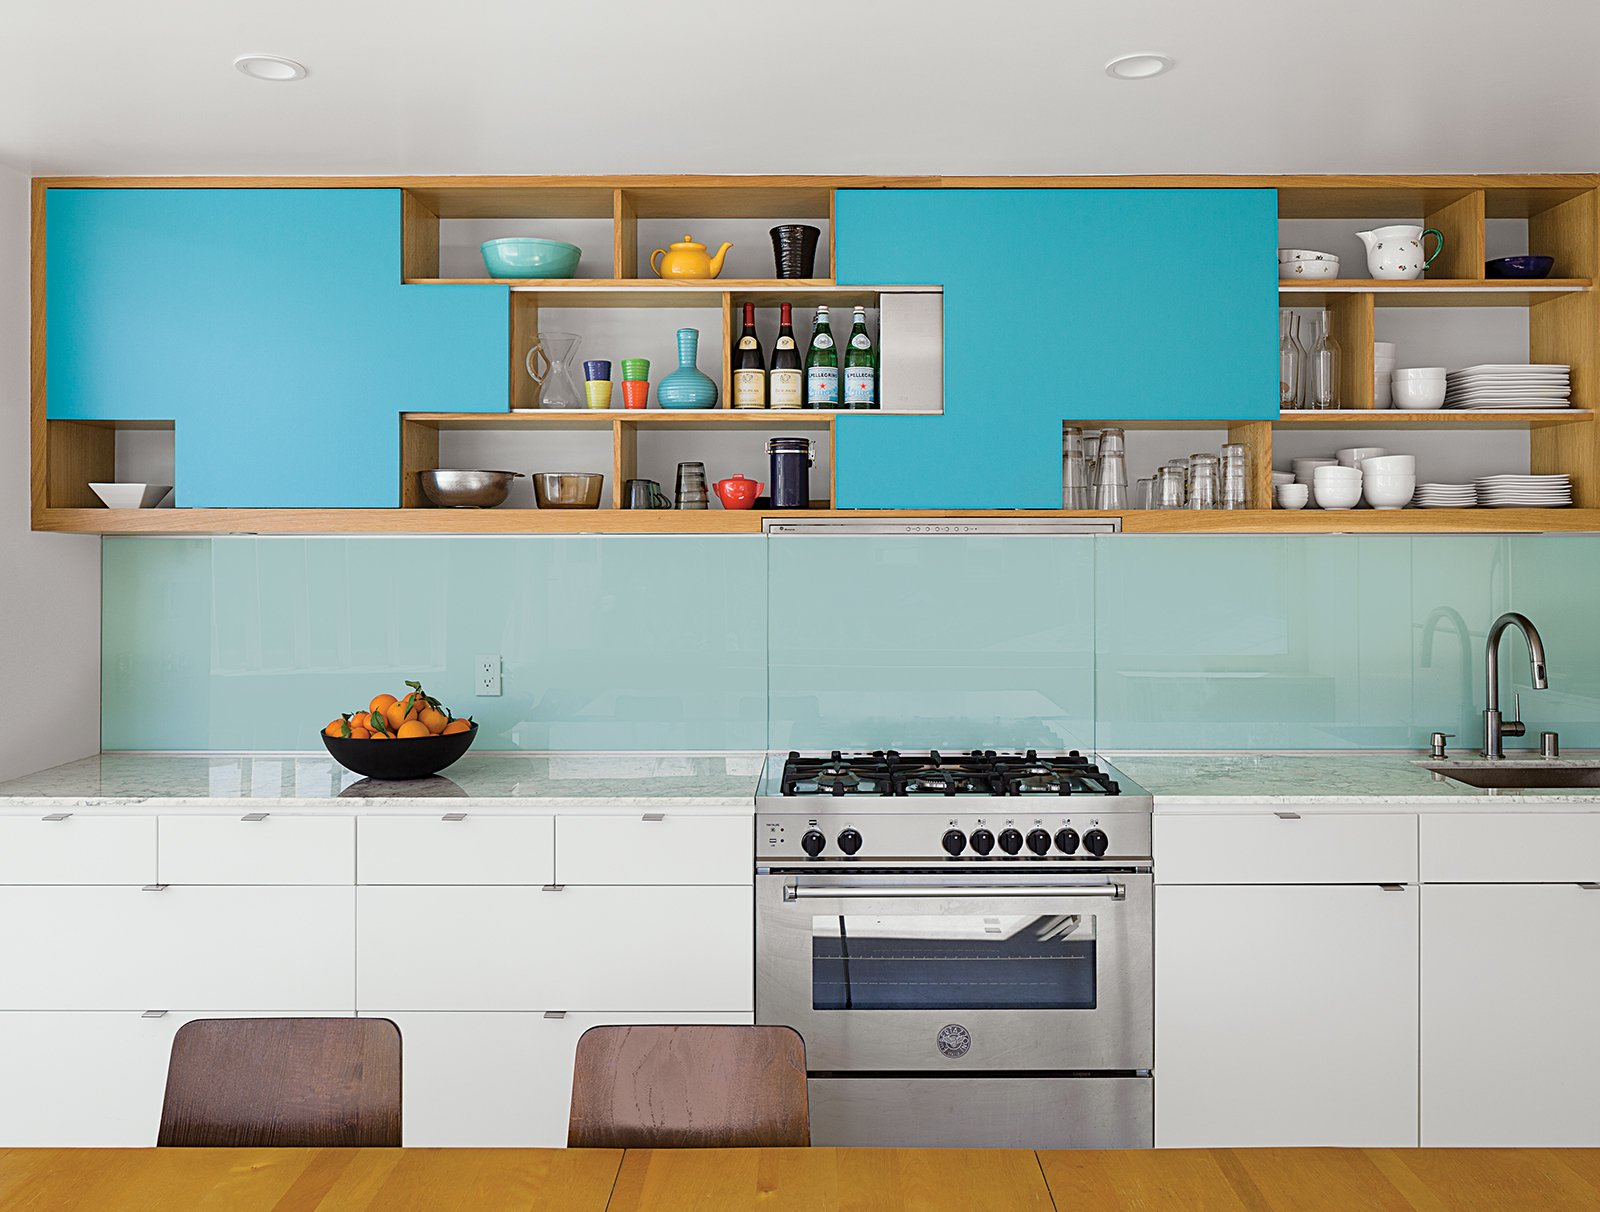 Kitchen, Colorful Cabinet, Range, Undermount Sink, Recessed Lighting, Open Cabinet, White Cabinet, and Glass Tile Backsplashe Modern cabinet finger pulls in a more bright and shiny chrome dot the drawers in this sleek kitchen in Venice, California.  Photo 9 of 10 in 10 Open Kitchen Solutions That Will Get Things Cooking from A Minimalist Duplex in Venice, California